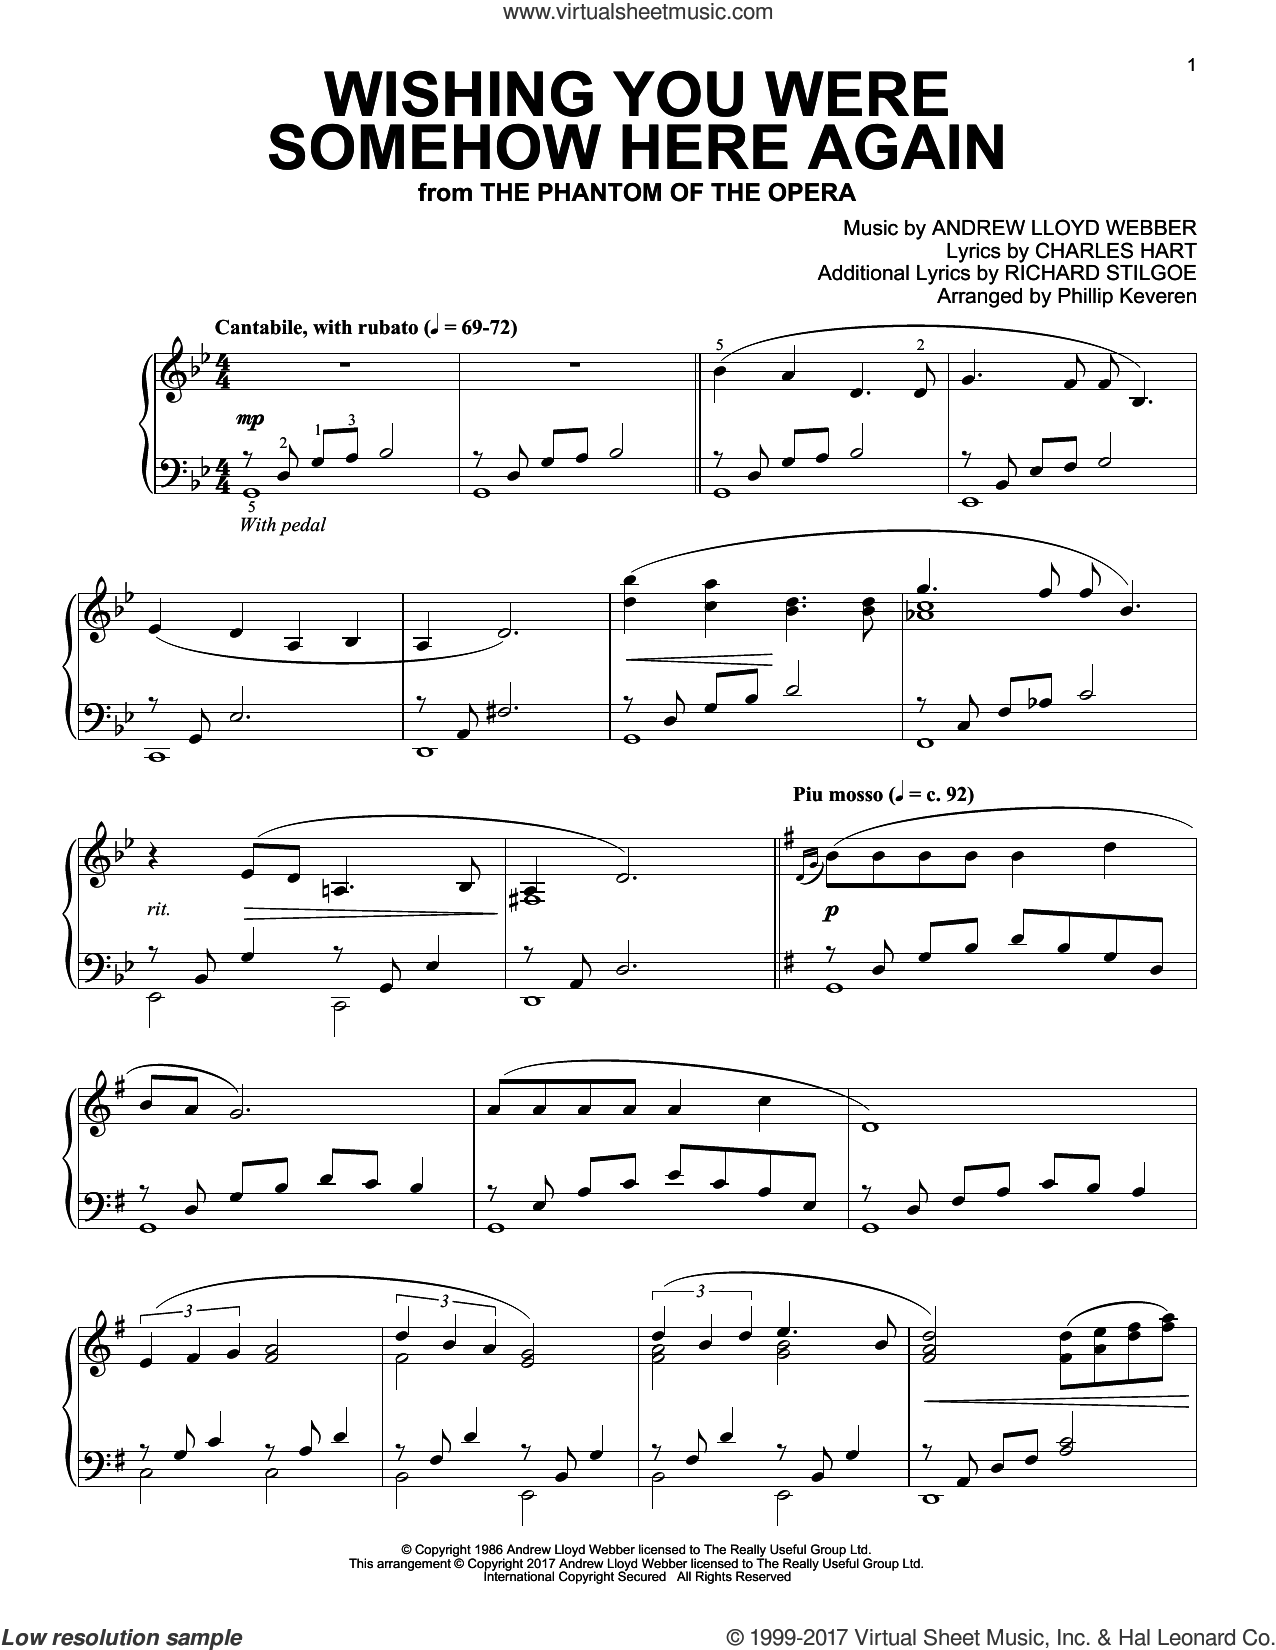 Wishing You Were Somehow Here Again (from The Phantom Of The Opera) sheet music for piano solo by Andrew Lloyd Webber, Phillip Keveren, Charles Hart and Richard Stilgoe, intermediate skill level